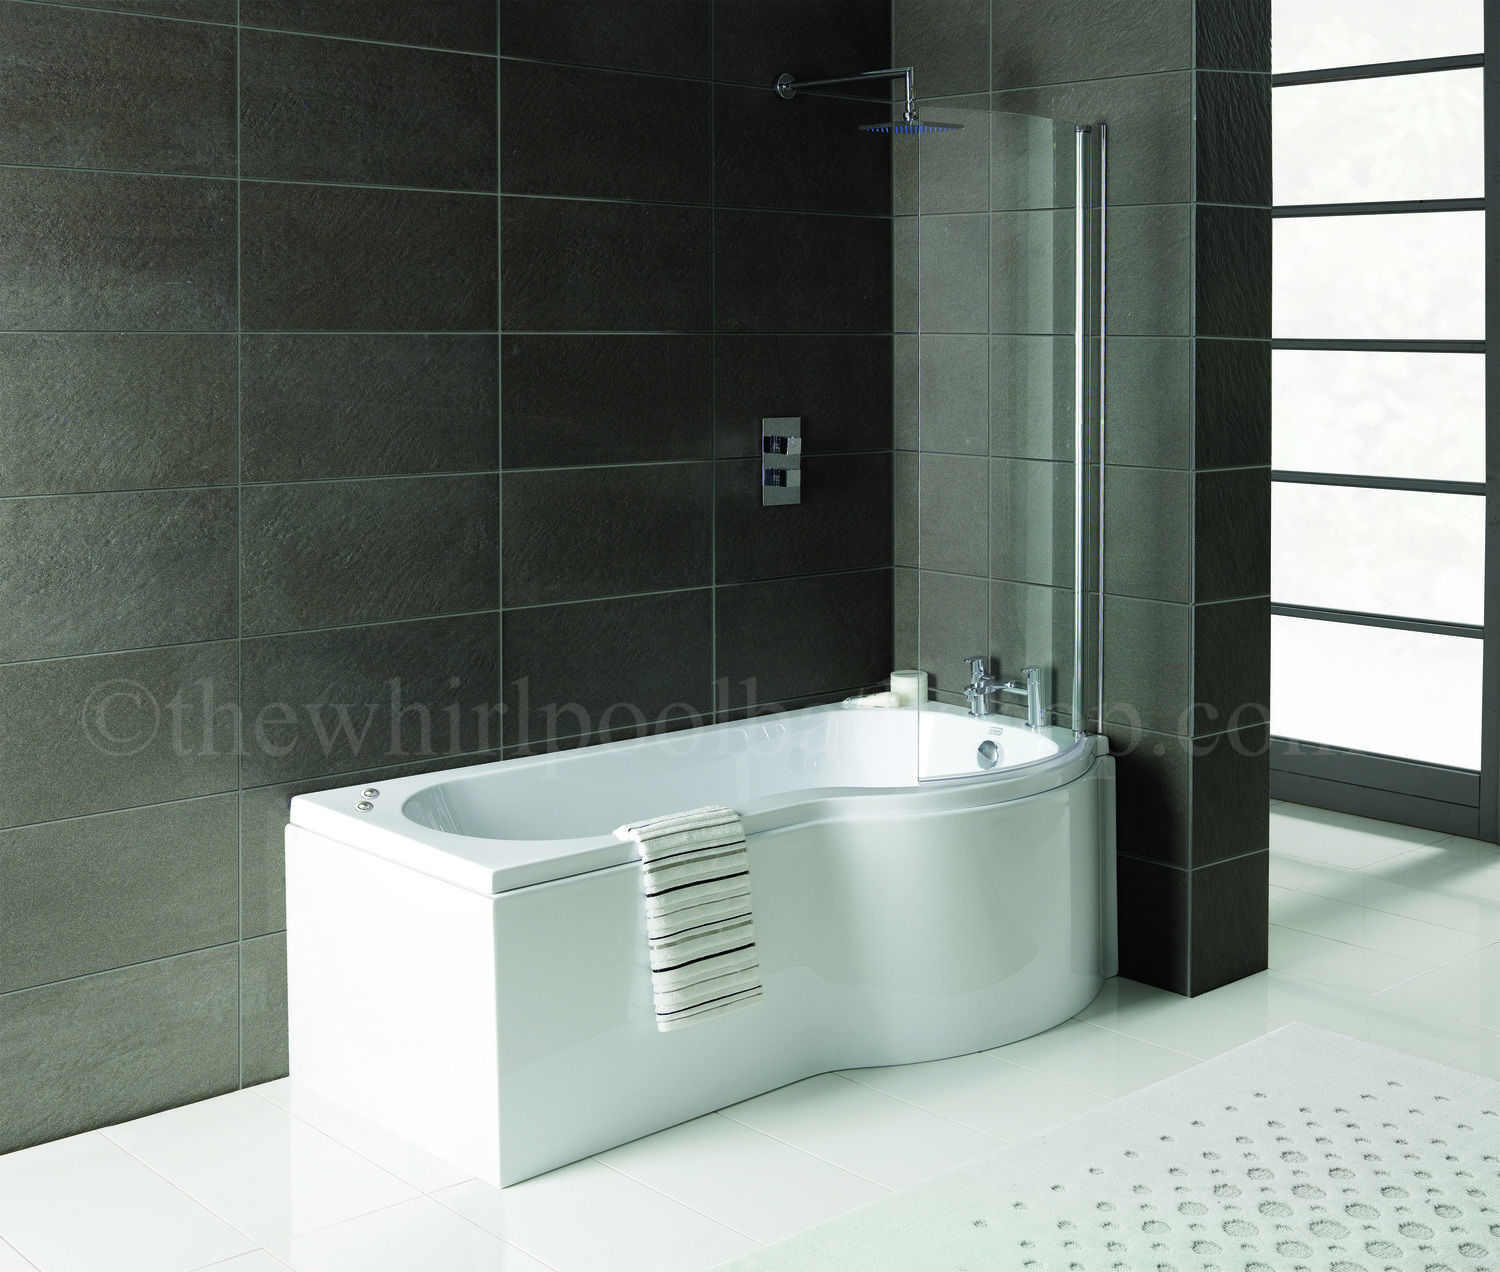 whirlpool baths and jacuzzi at the whirlpool bath shop rh oceania 12 jet p shape whirlpool shower bath